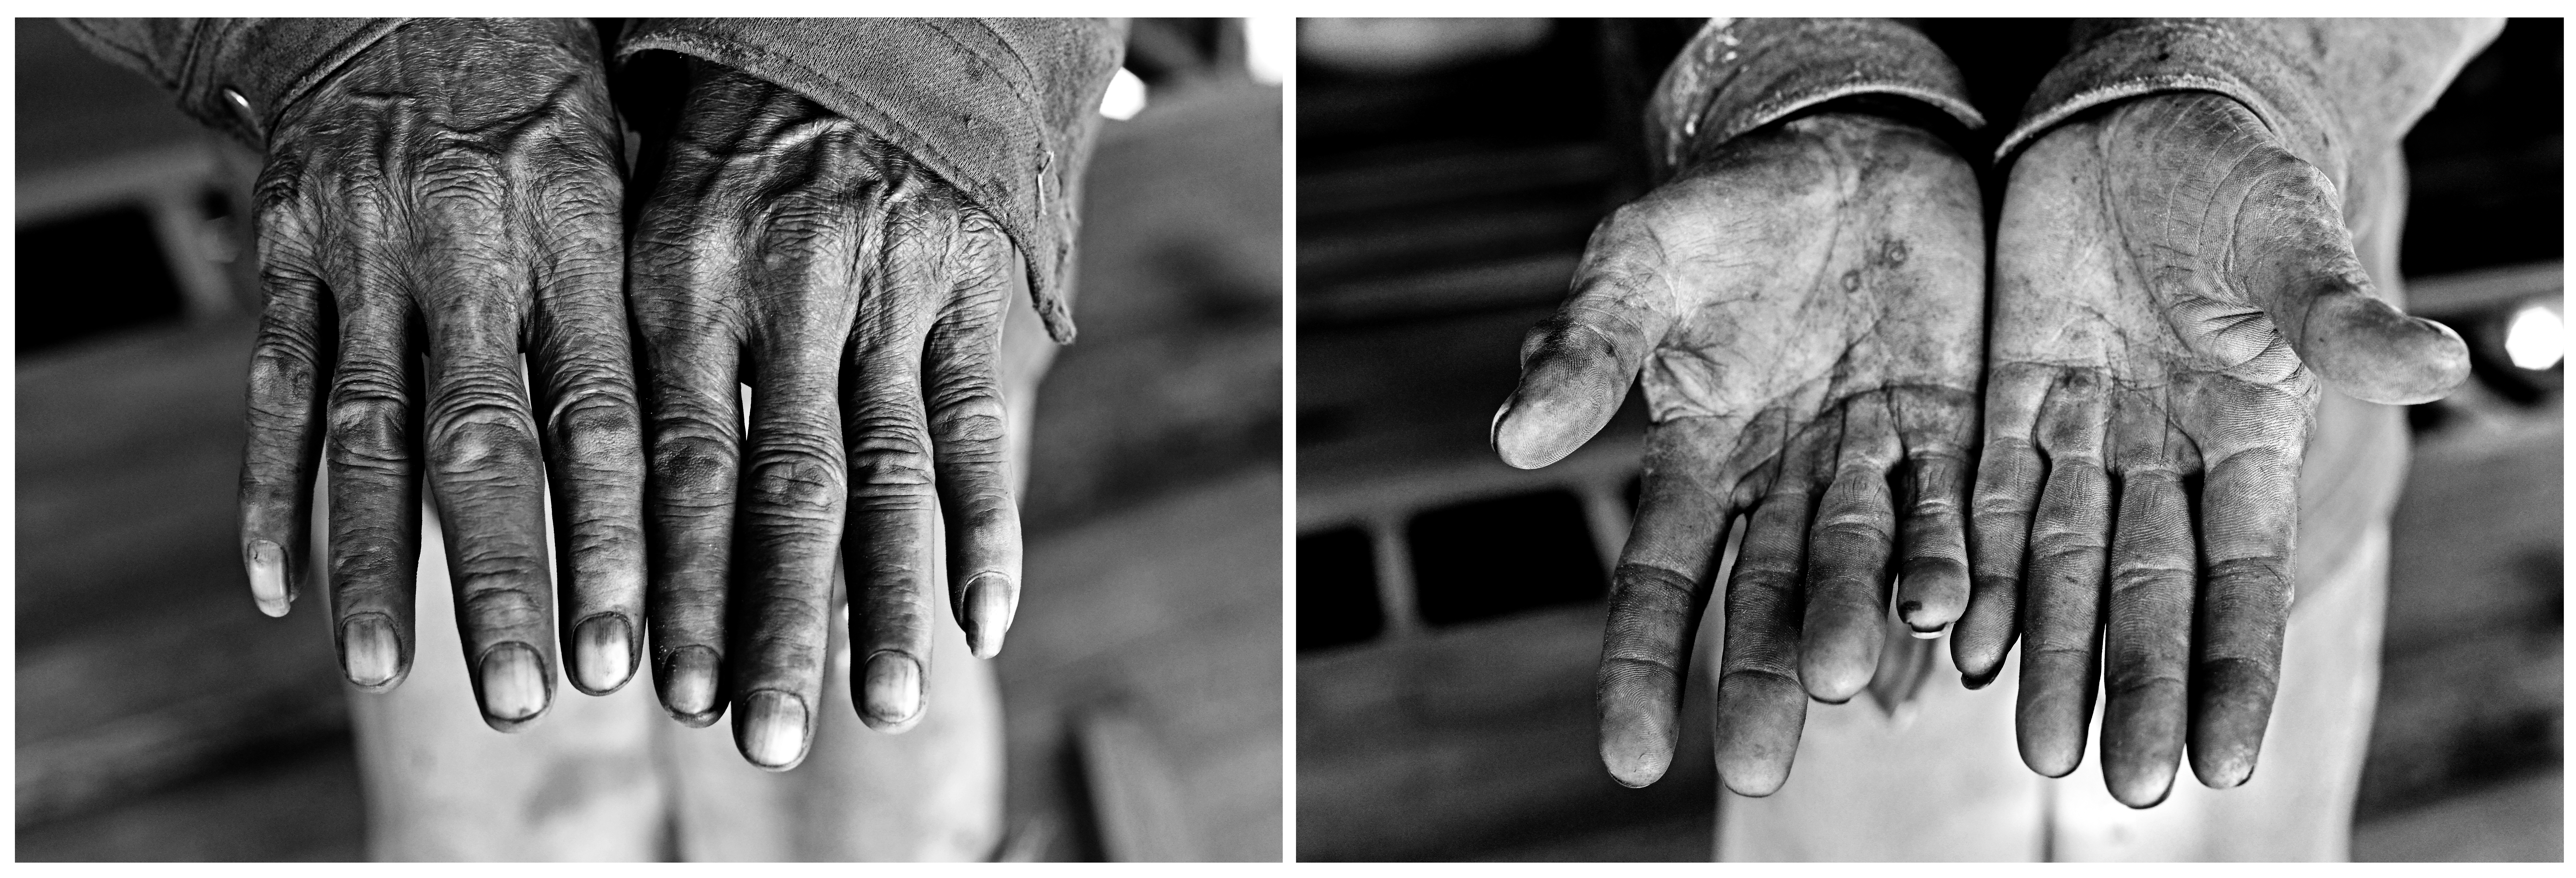 Chin Hands Diptych